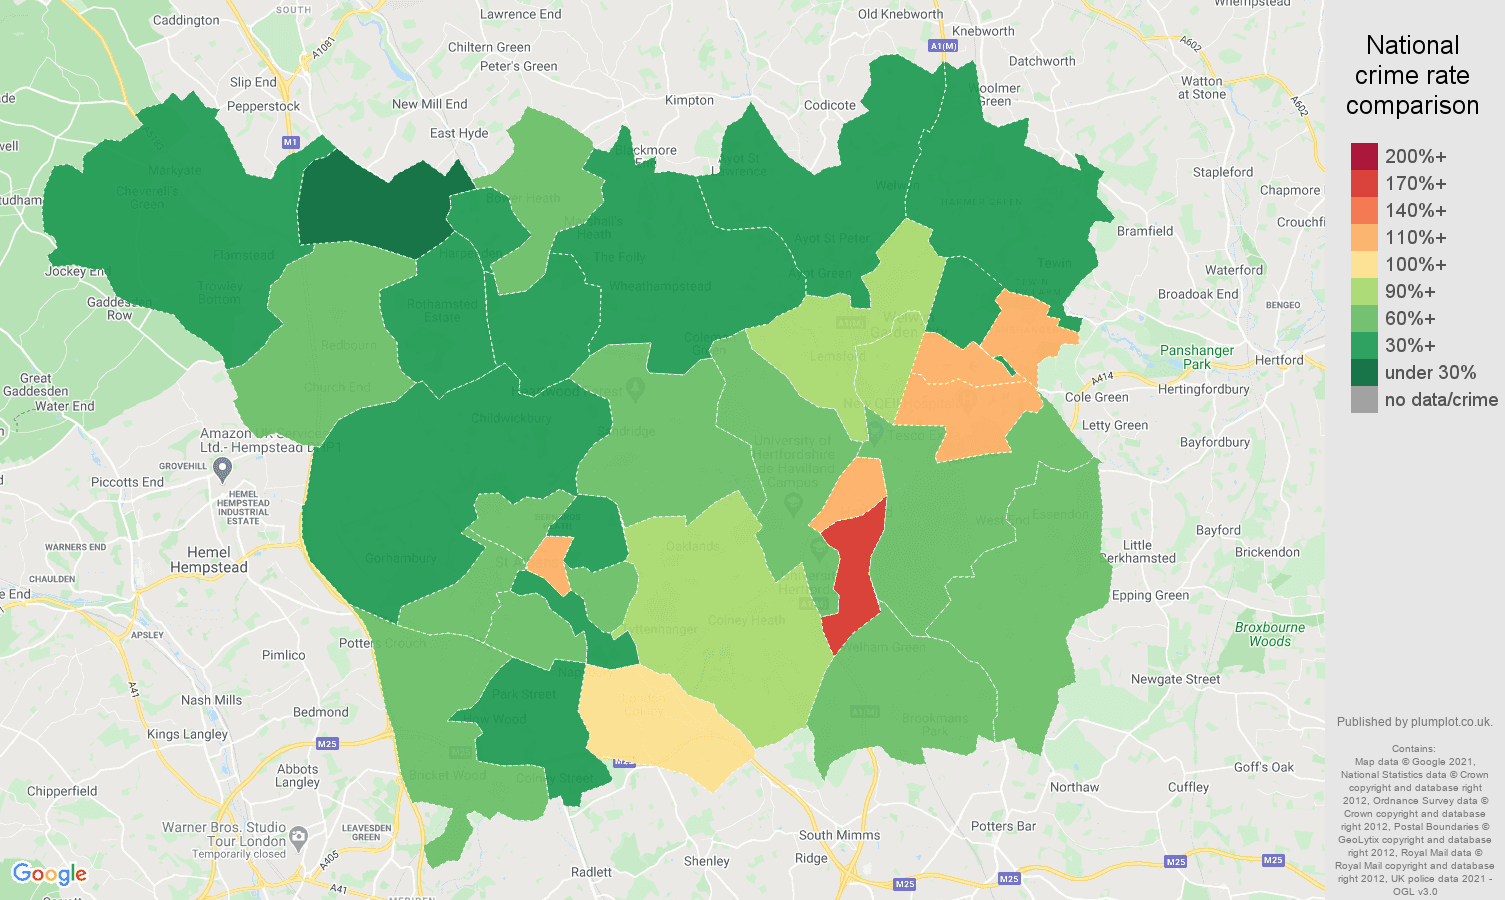 St Albans antisocial behaviour crime rate comparison map